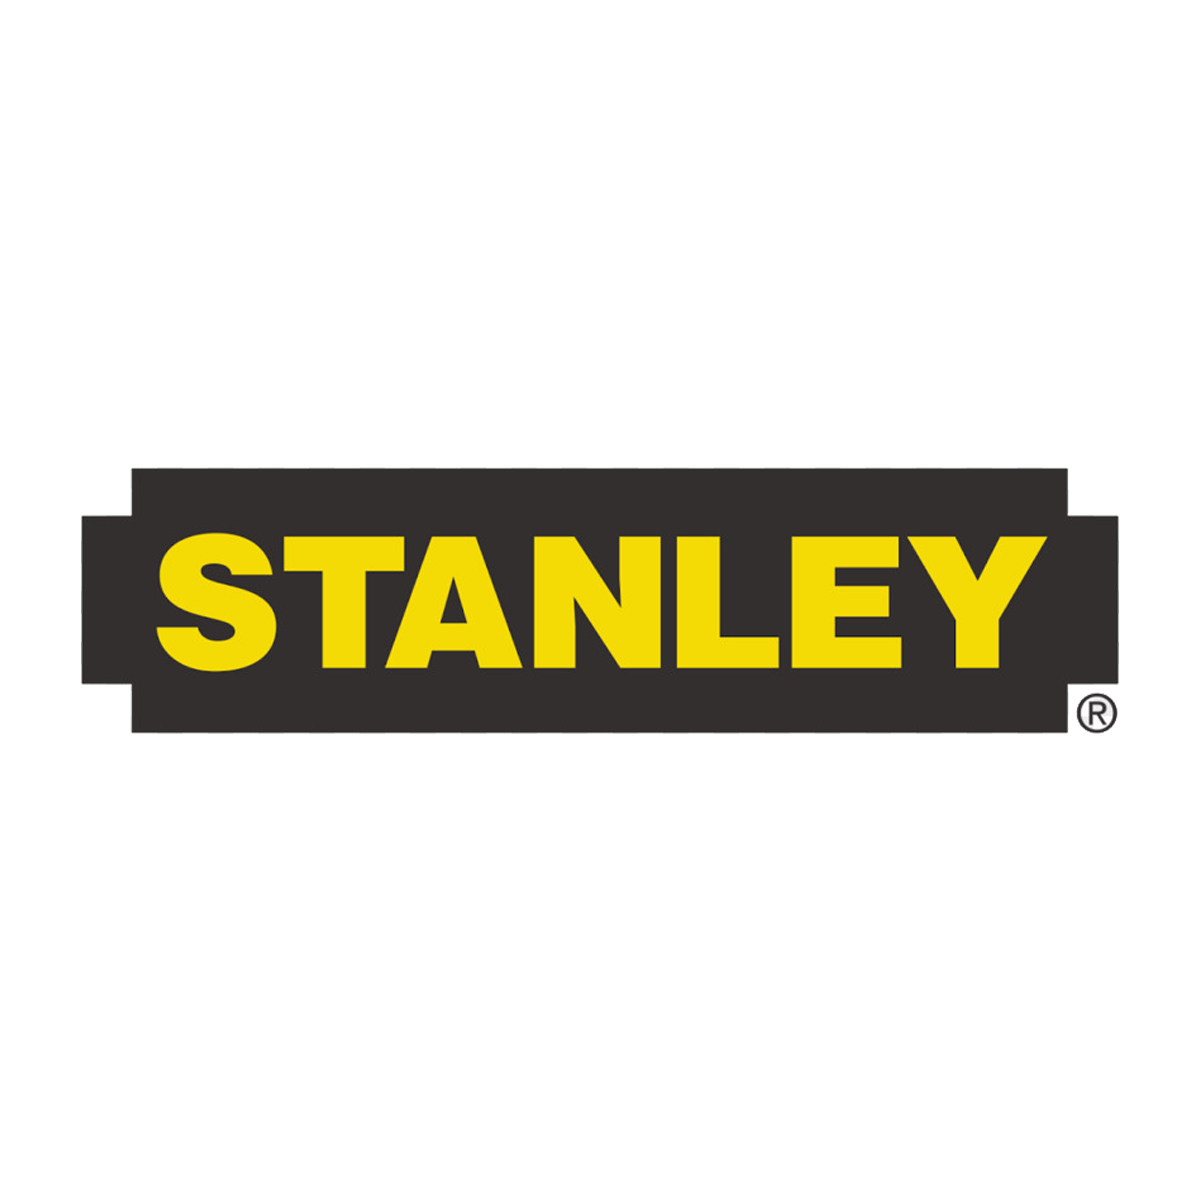 branded stanley product dc ny md va